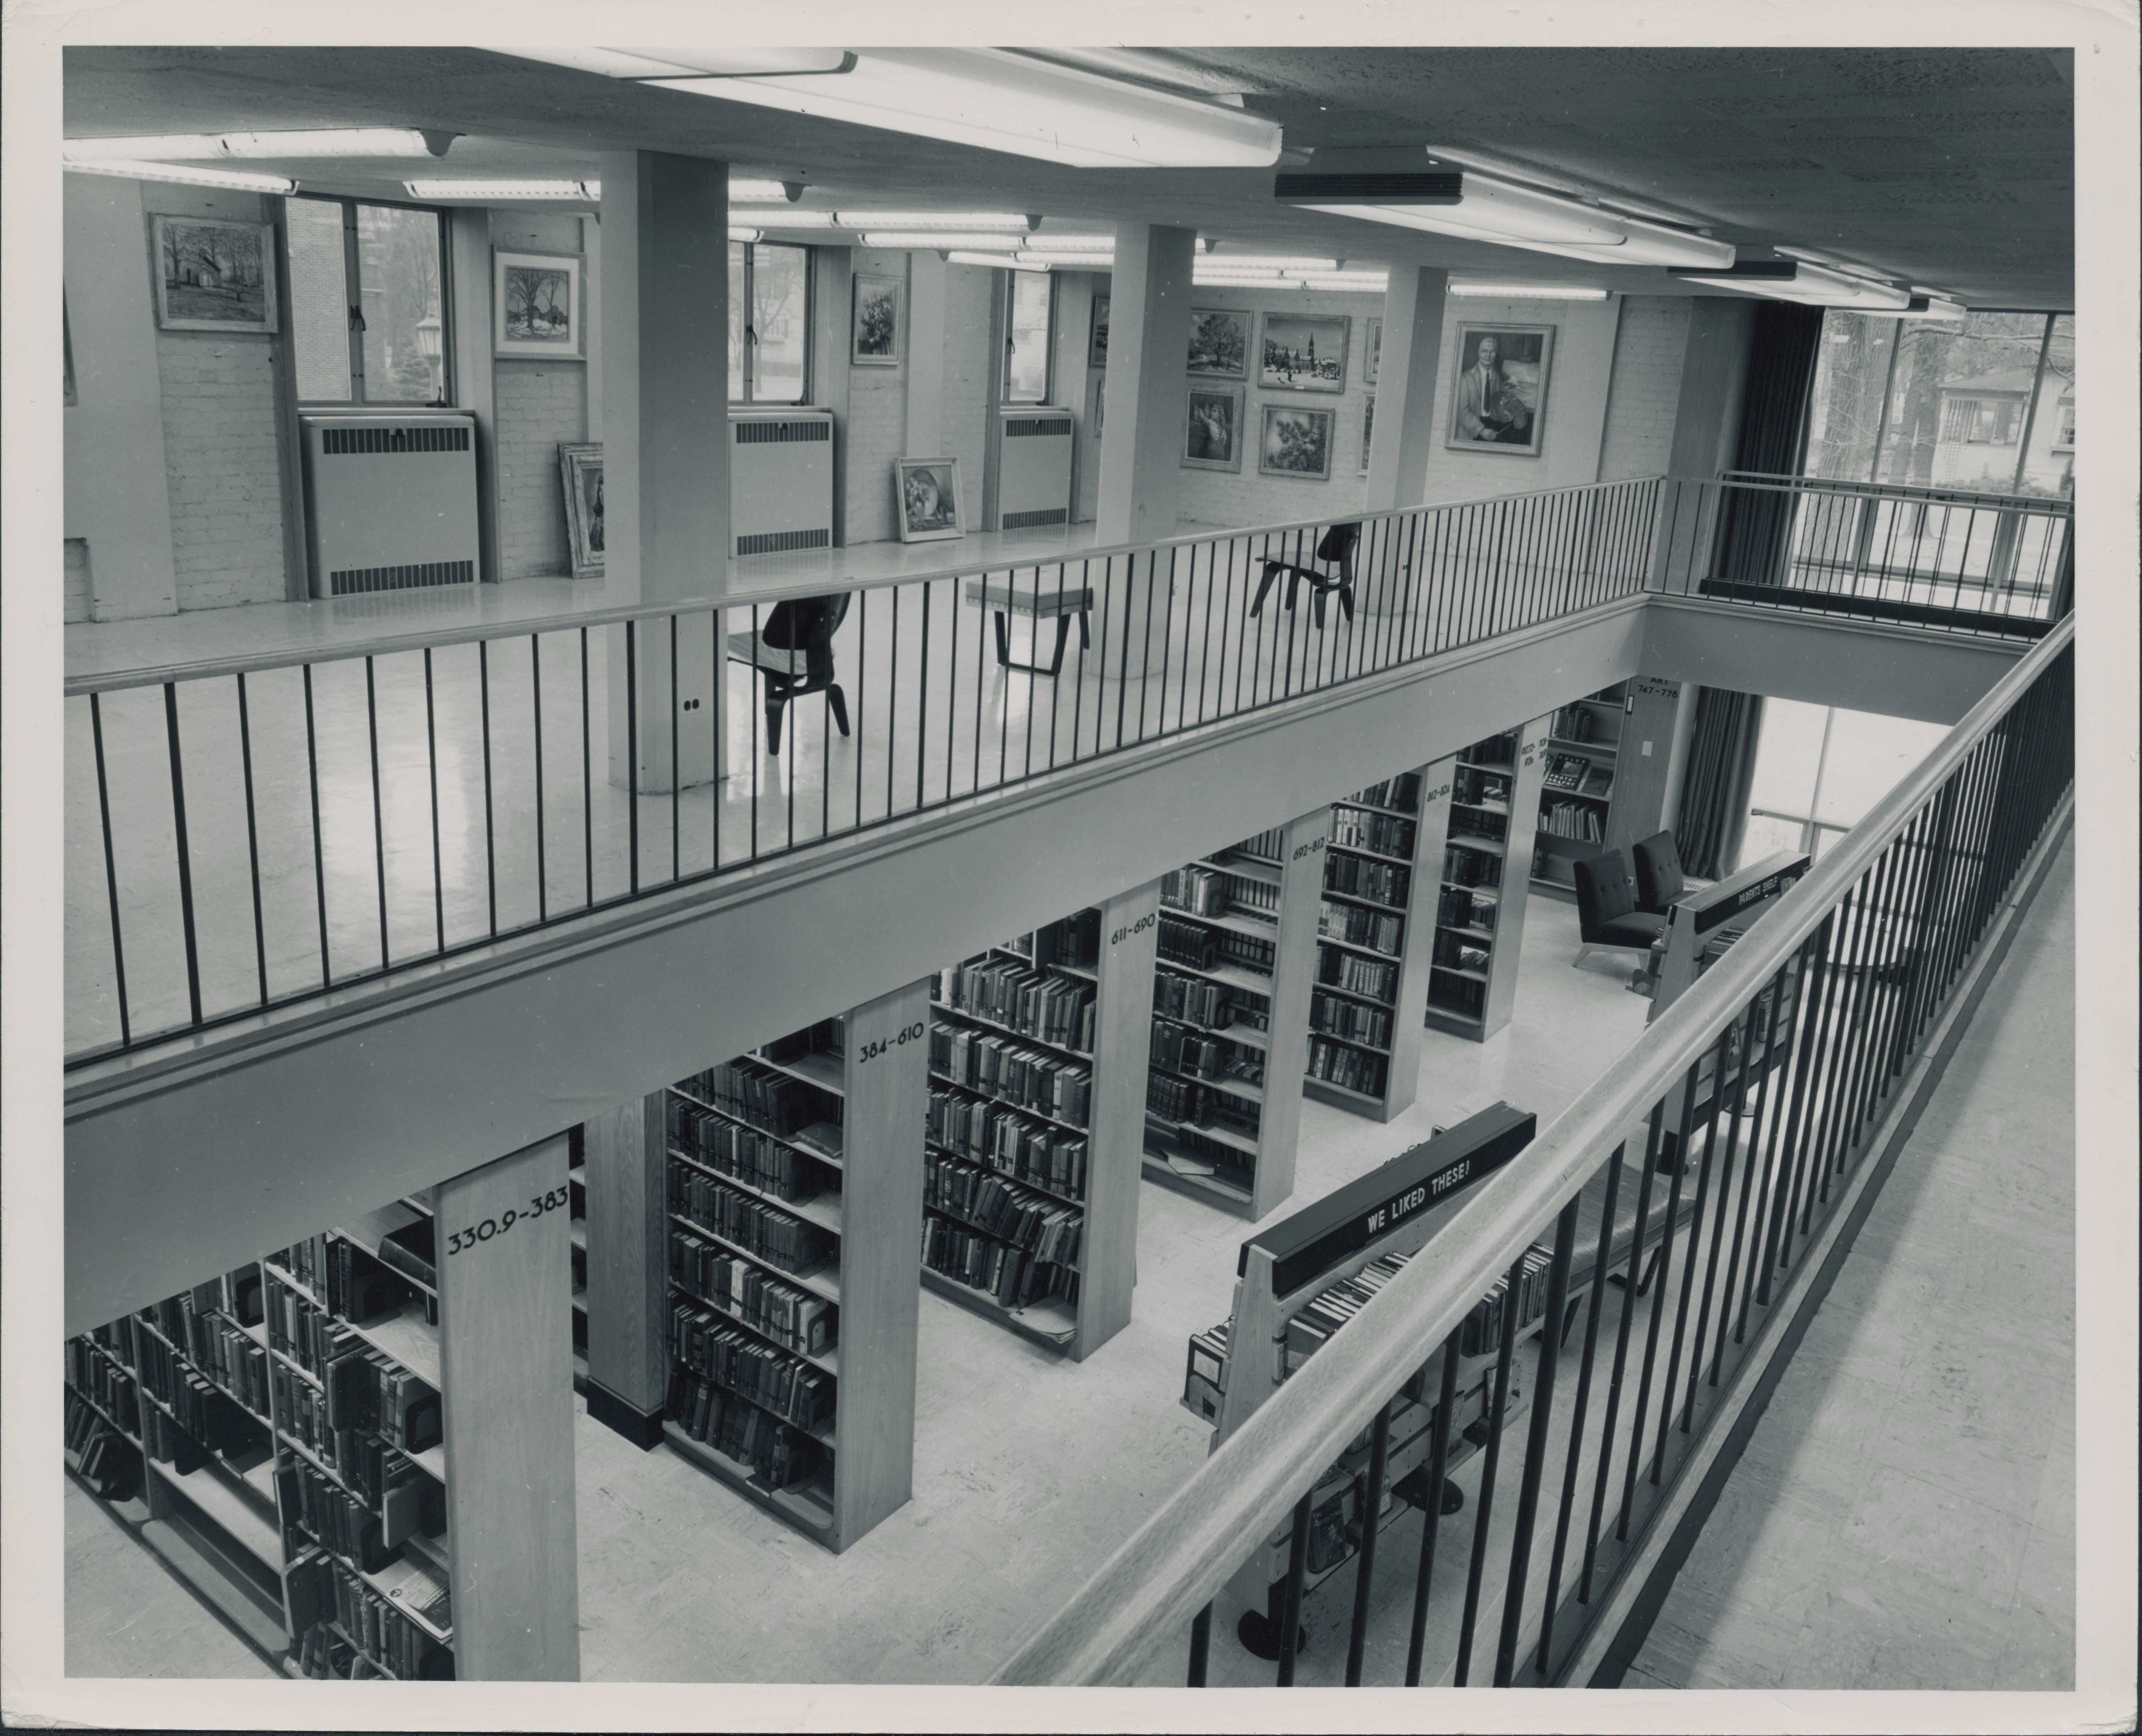 Library-1960-1969-Photo 40